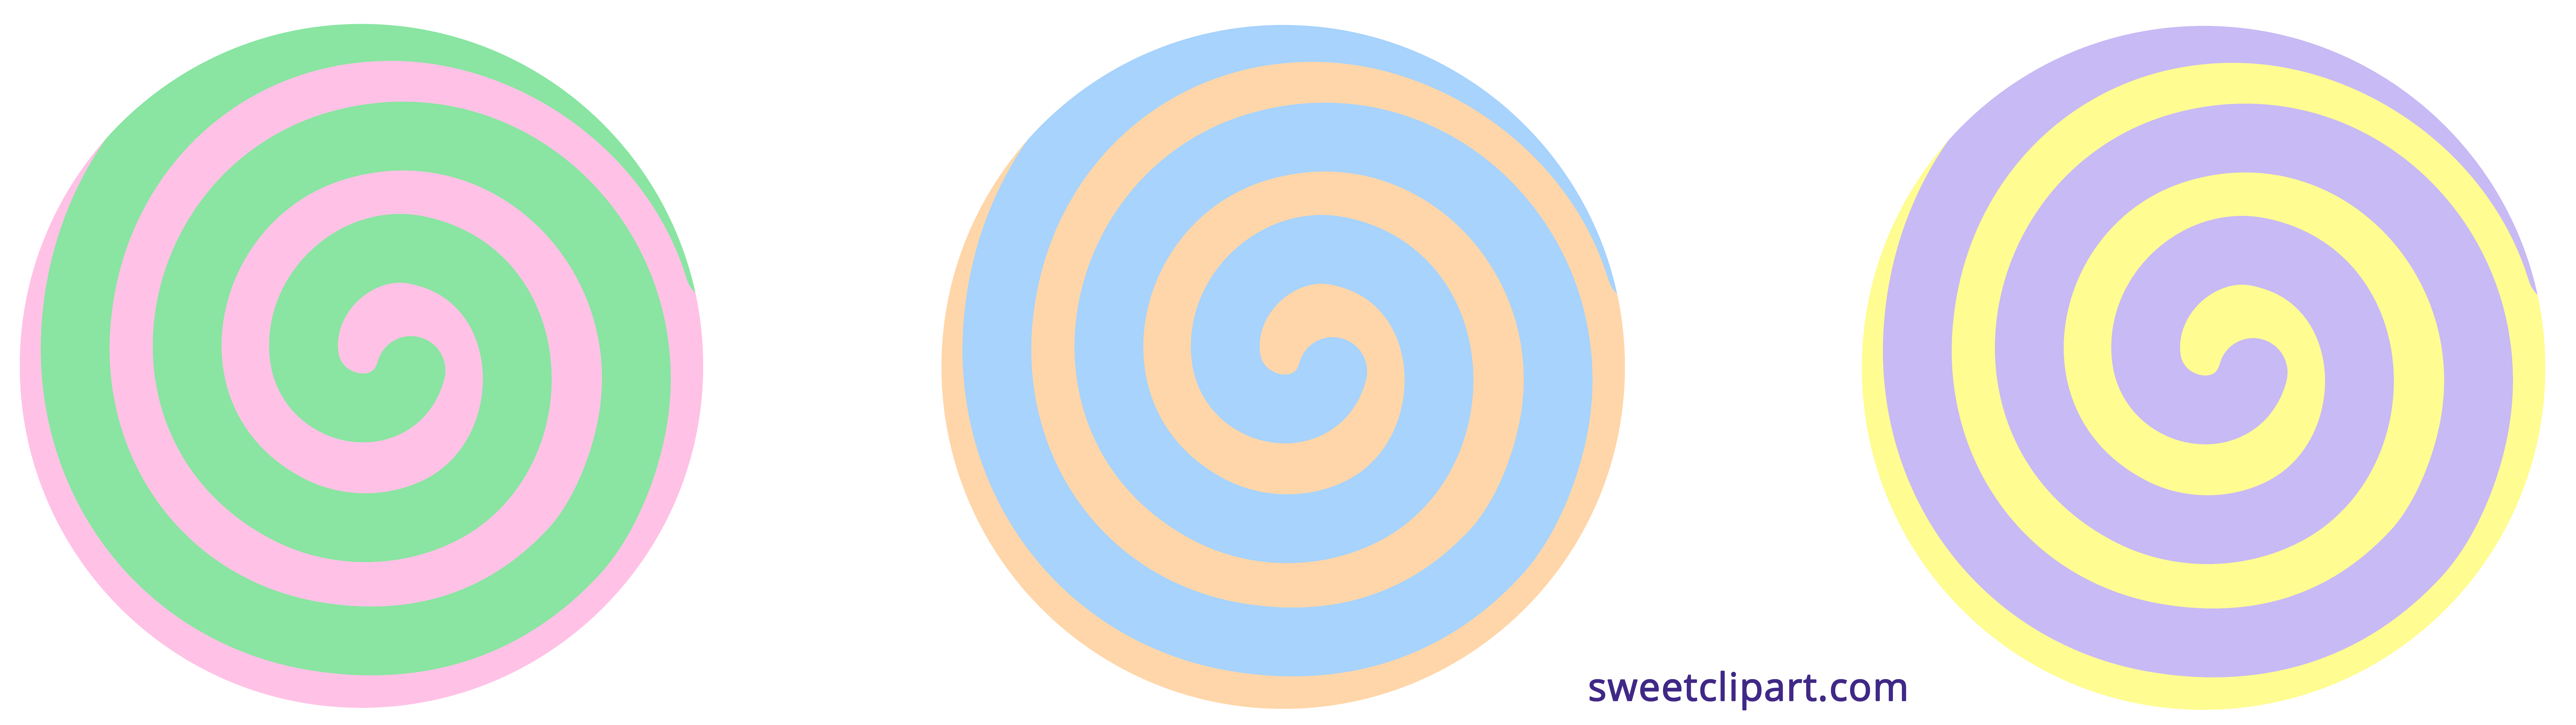 Circle clipart candy. Pastel spiral sweet clip